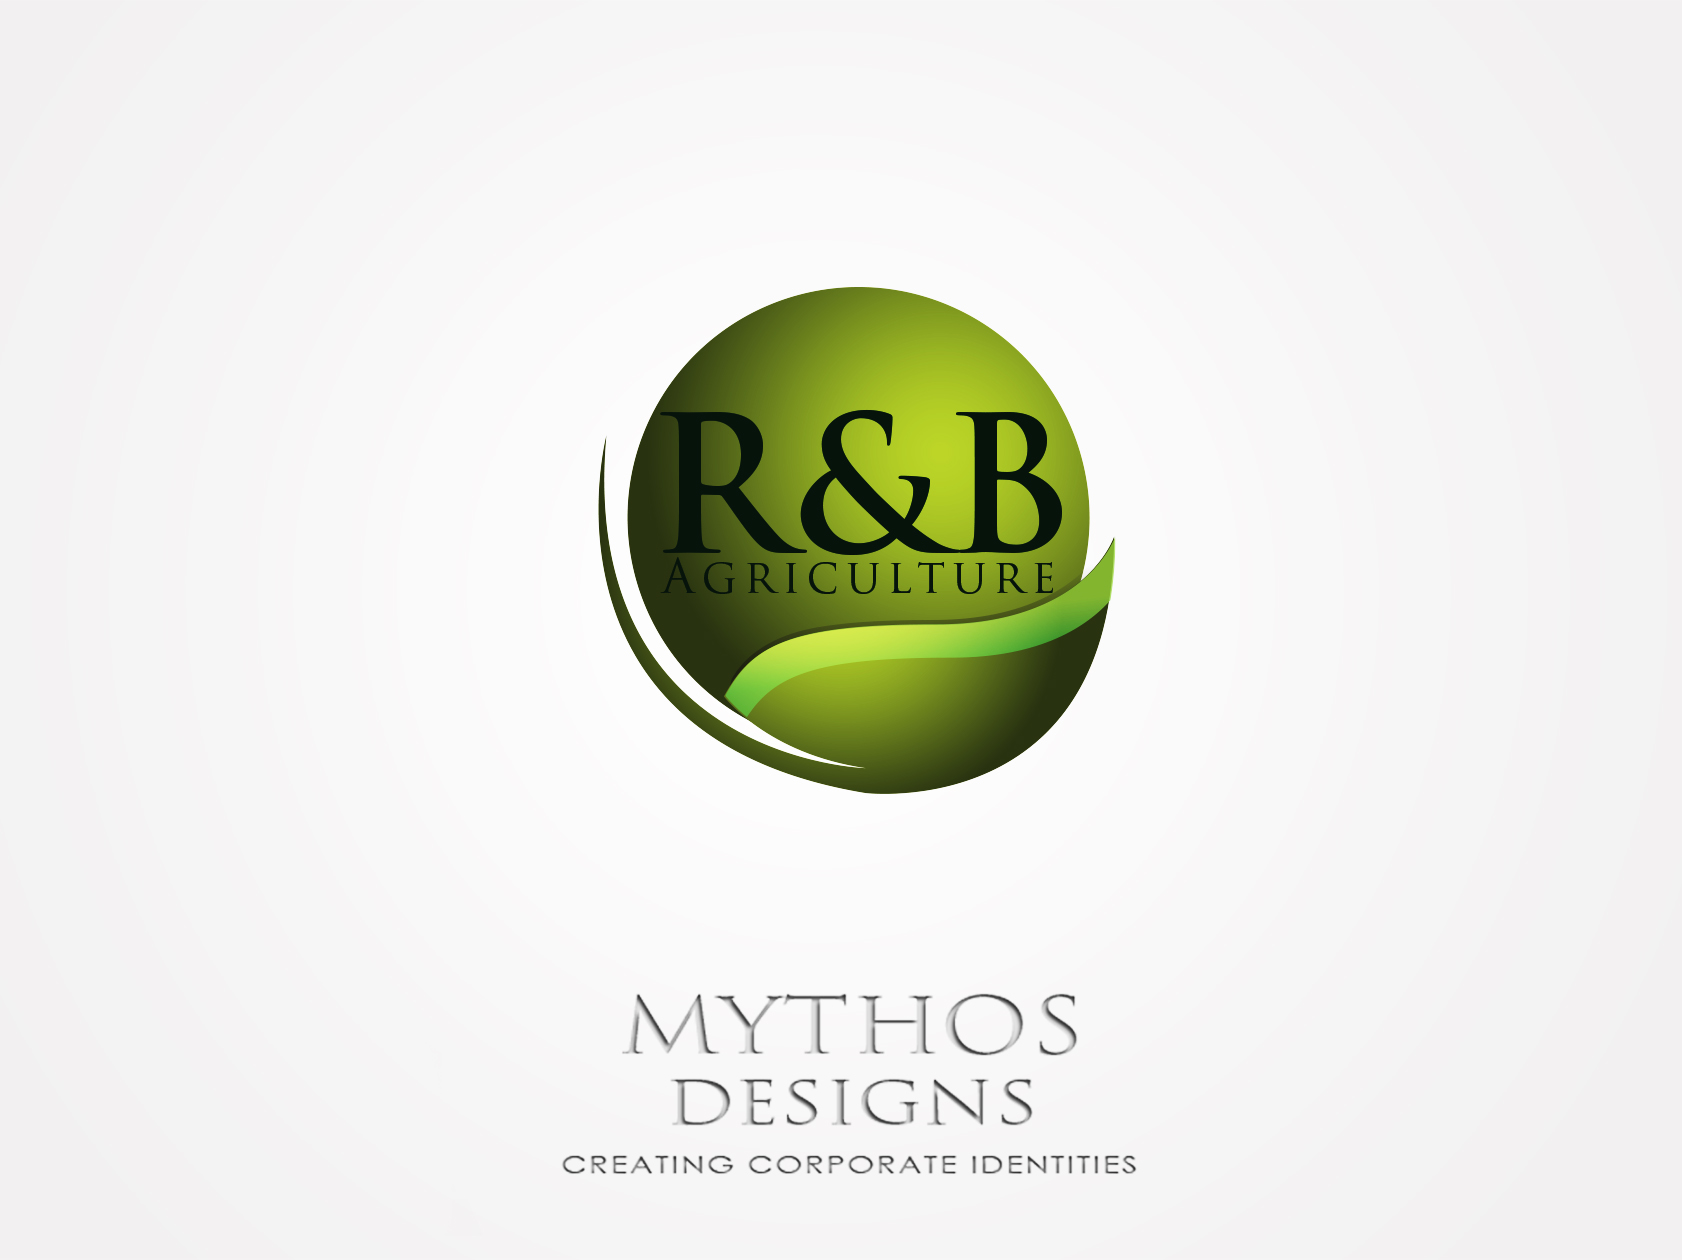 Logo Design by Mythos Designs - Entry No. 104 in the Logo Design Contest Captivating Logo Design for R & B Agriculture.